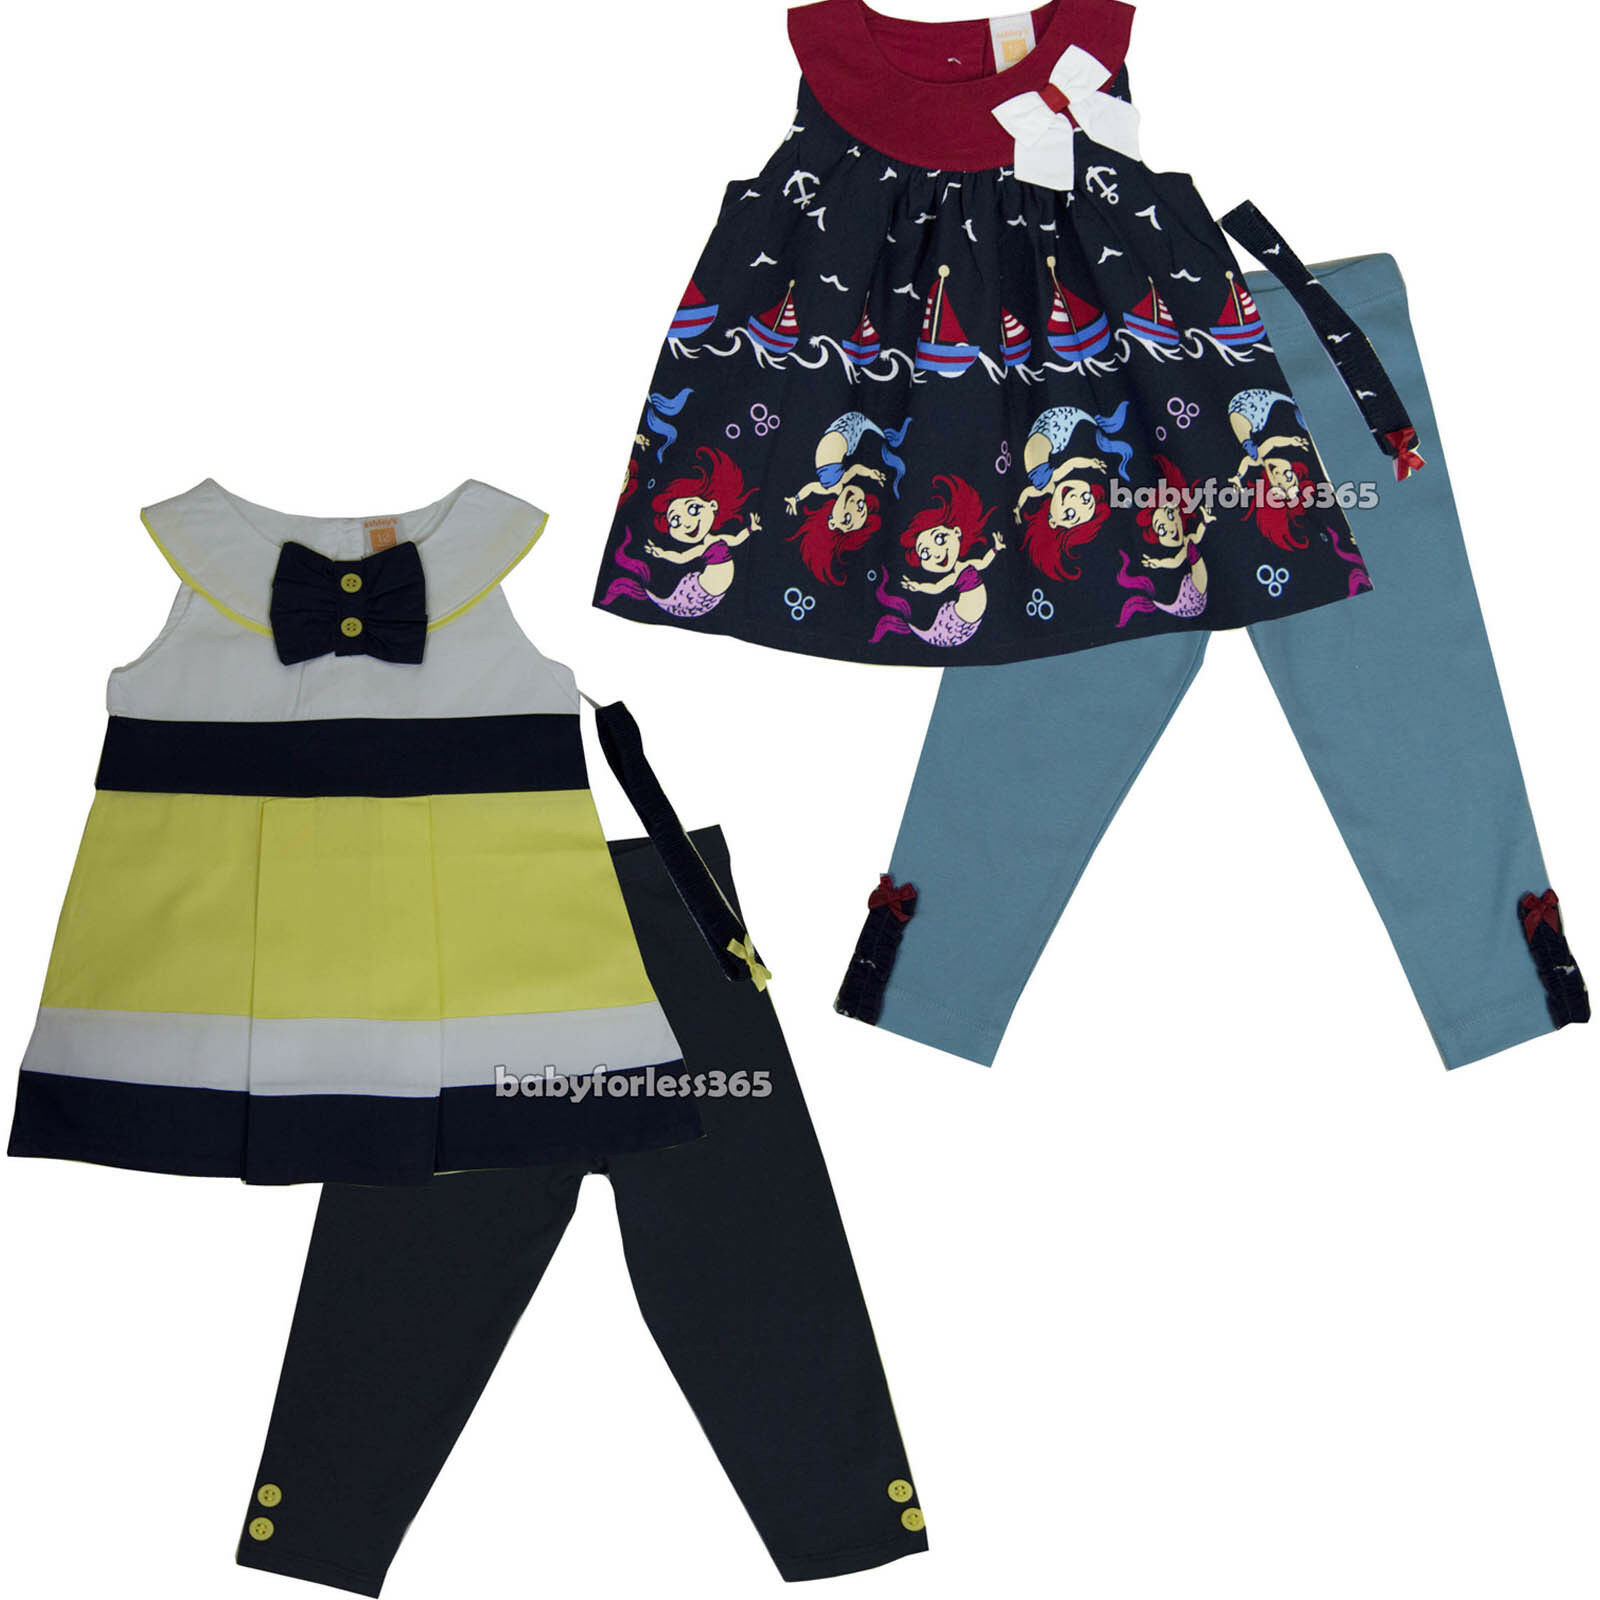 04fee55674cfc Details about New Ashley Baby Girls Outfit Clothes Headband Shirt legging  Size 12 18 24 months